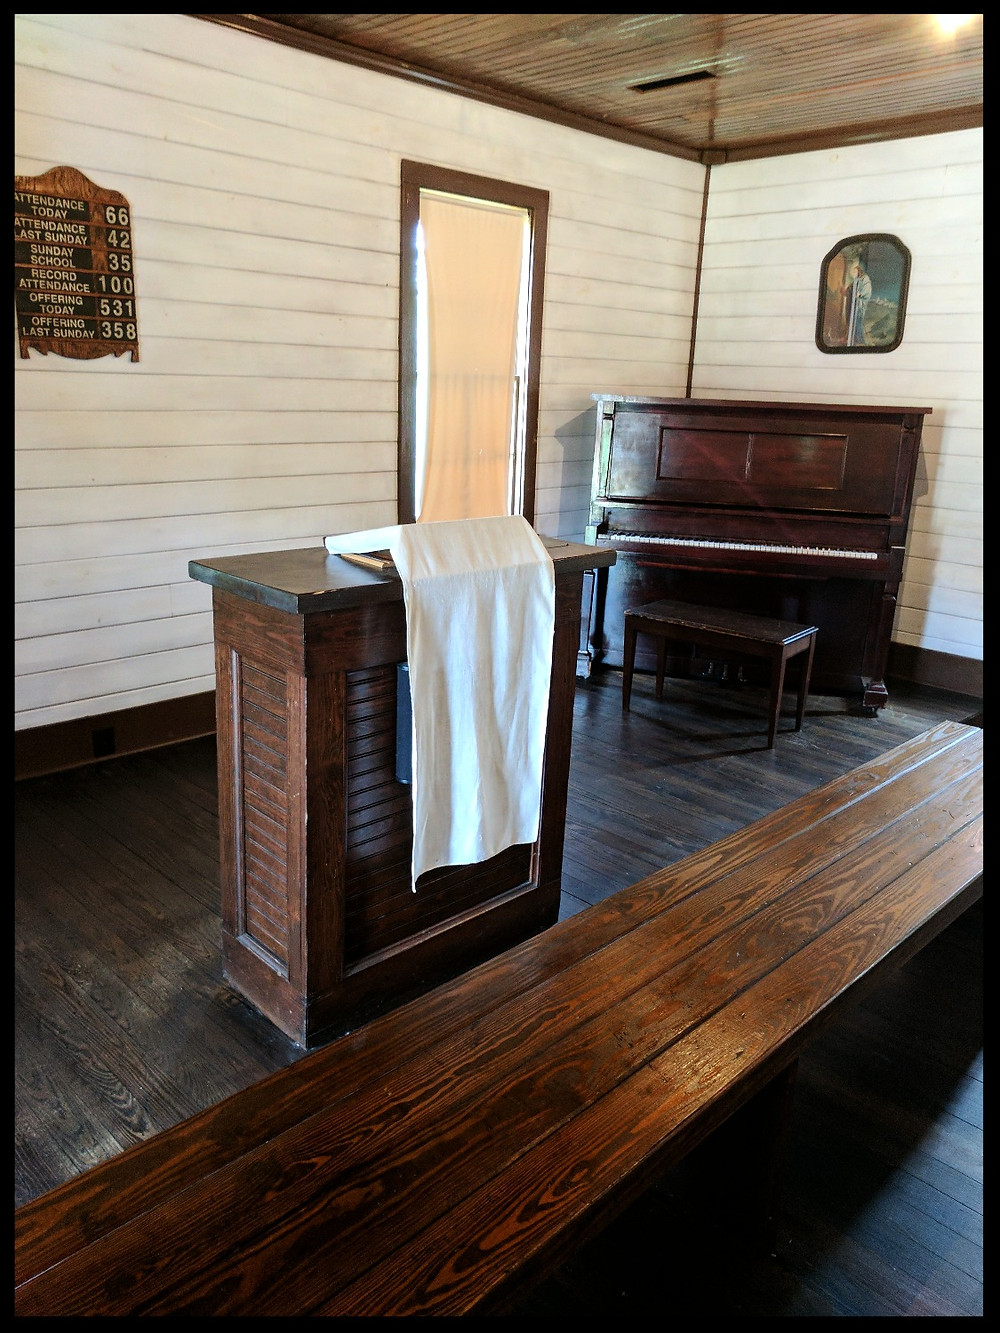 The Assembly of God Church, The Elvis Presley Birthplace Museum, Tupelo, Mississippi.